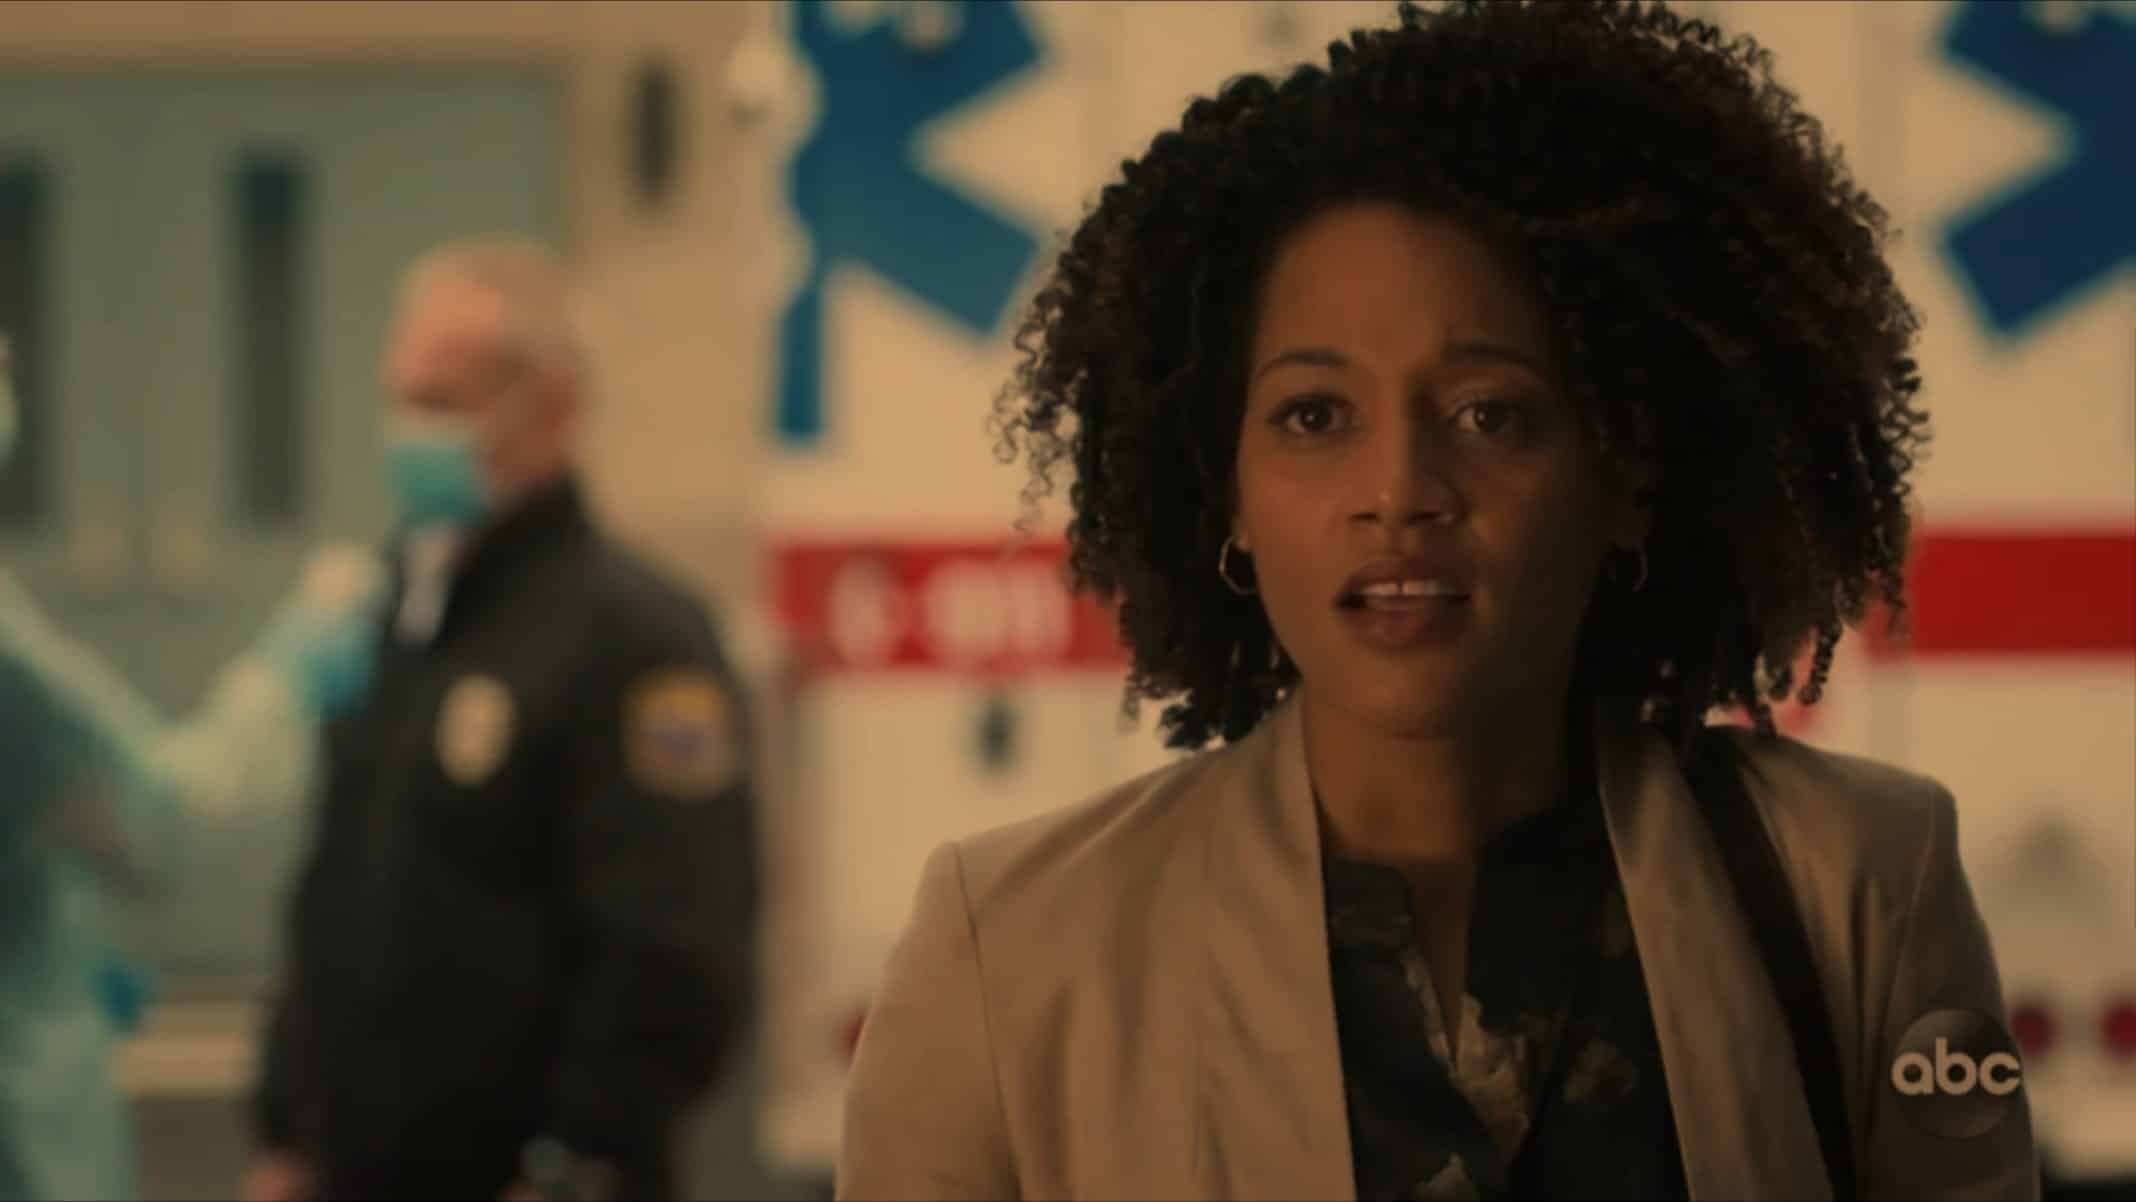 Rochelle (Bethany Brown) who is Mildred's daughter